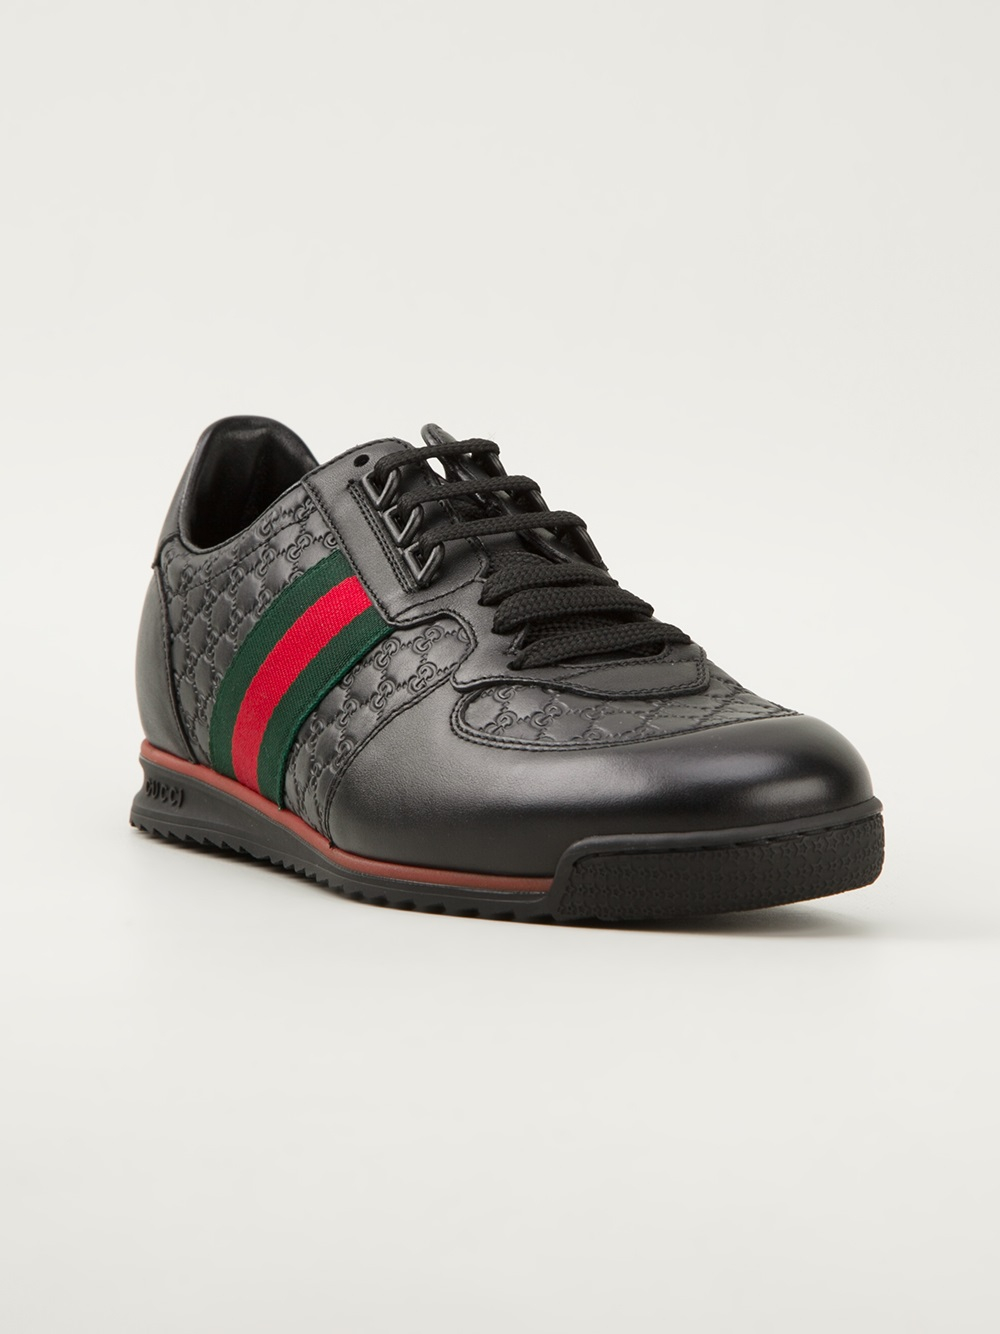 Watch - All gucci black shoes photo video